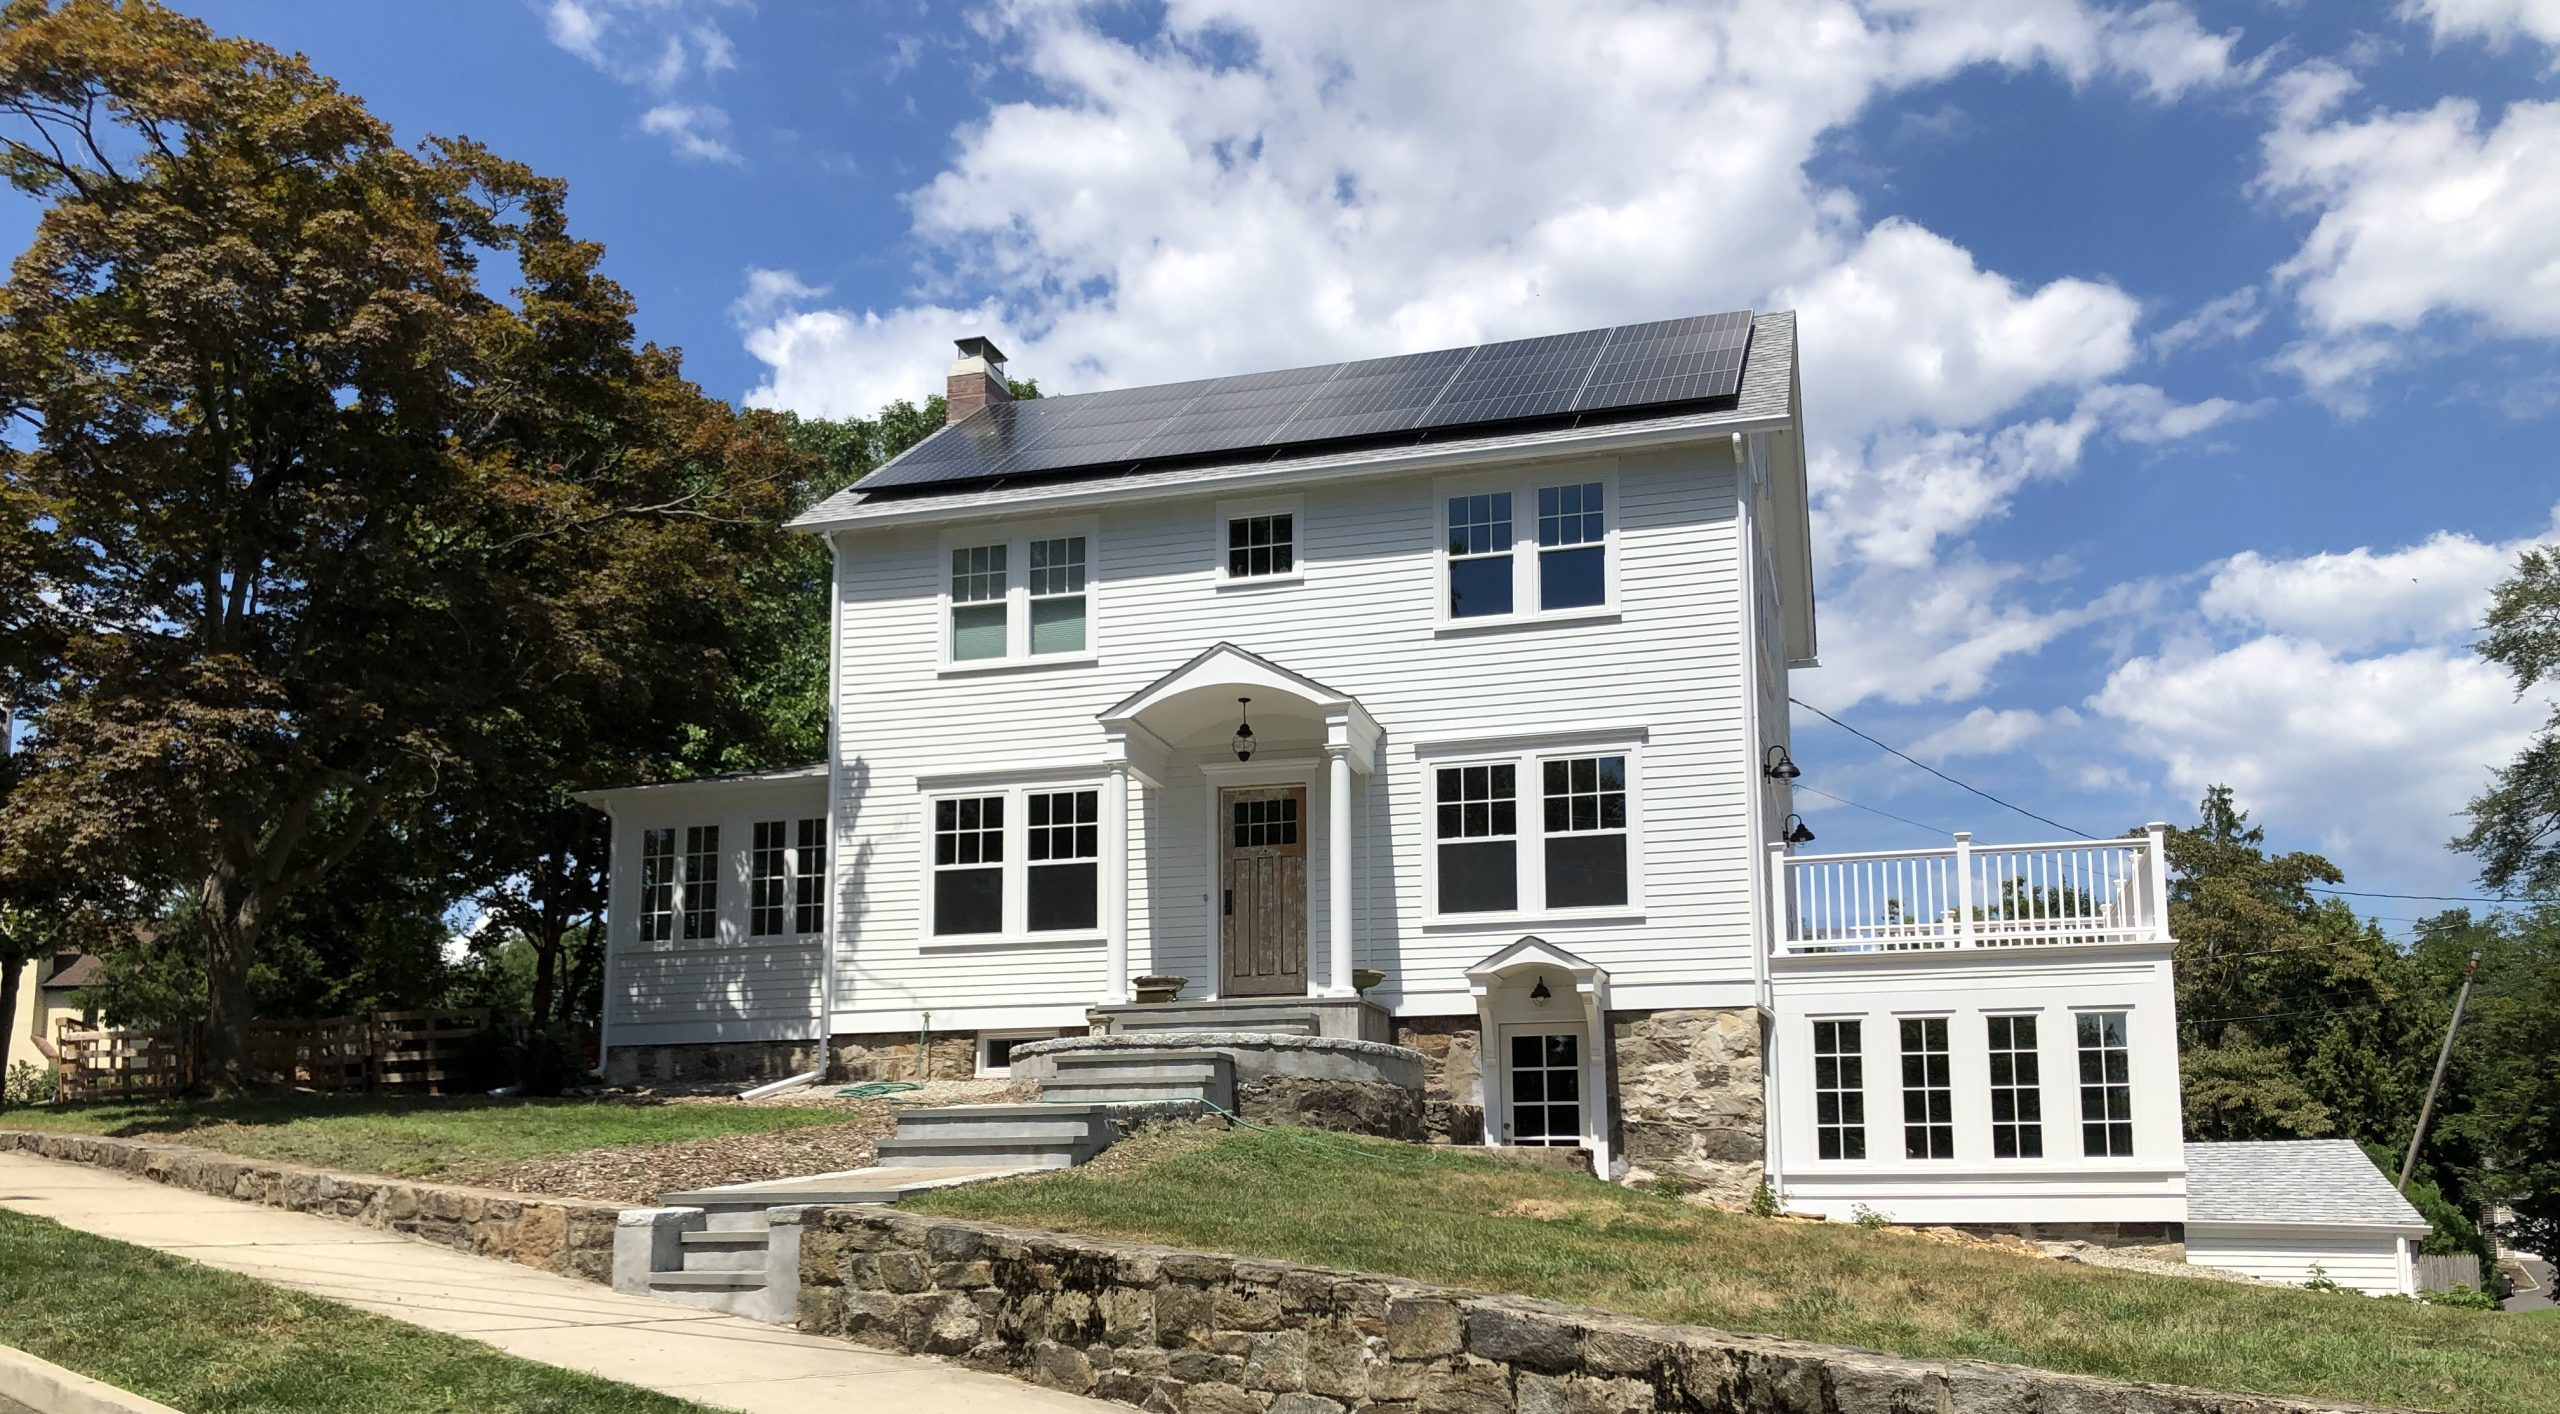 All-Electric Home in Connecticut Shows Resiliency During Tropical Storm